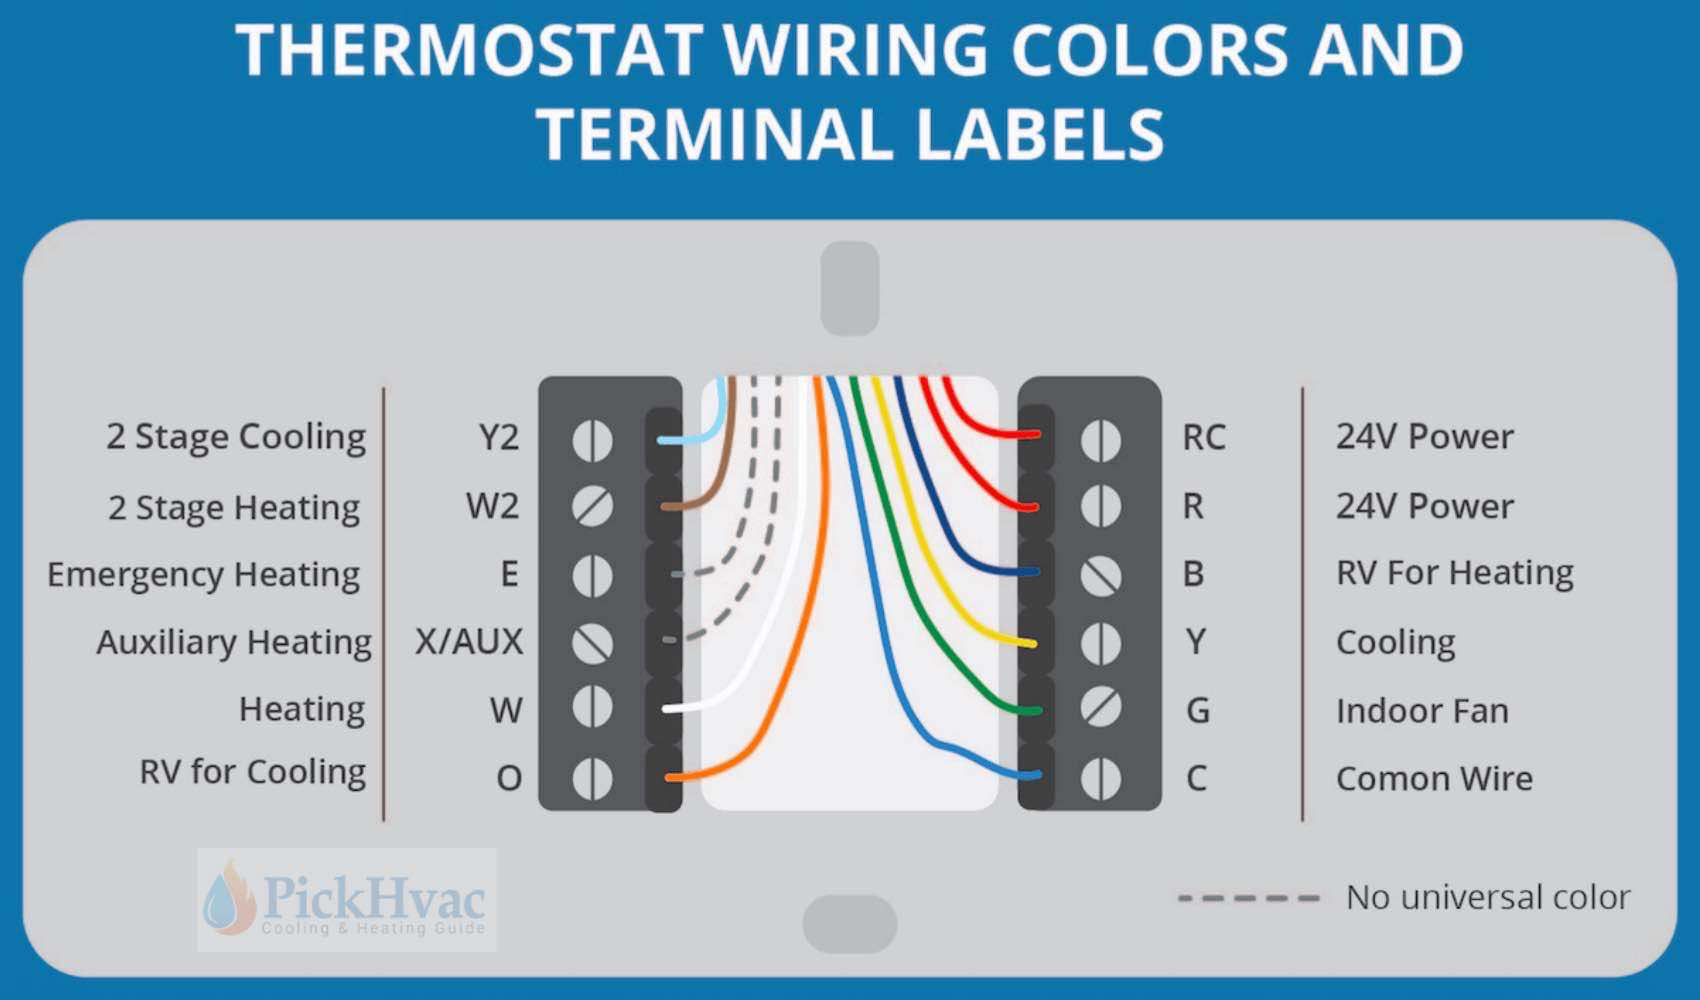 Thermostat Wiring Guide - Wiring Diagrams Click - Round Nest Thermostat Honeywell Wiring Diagram